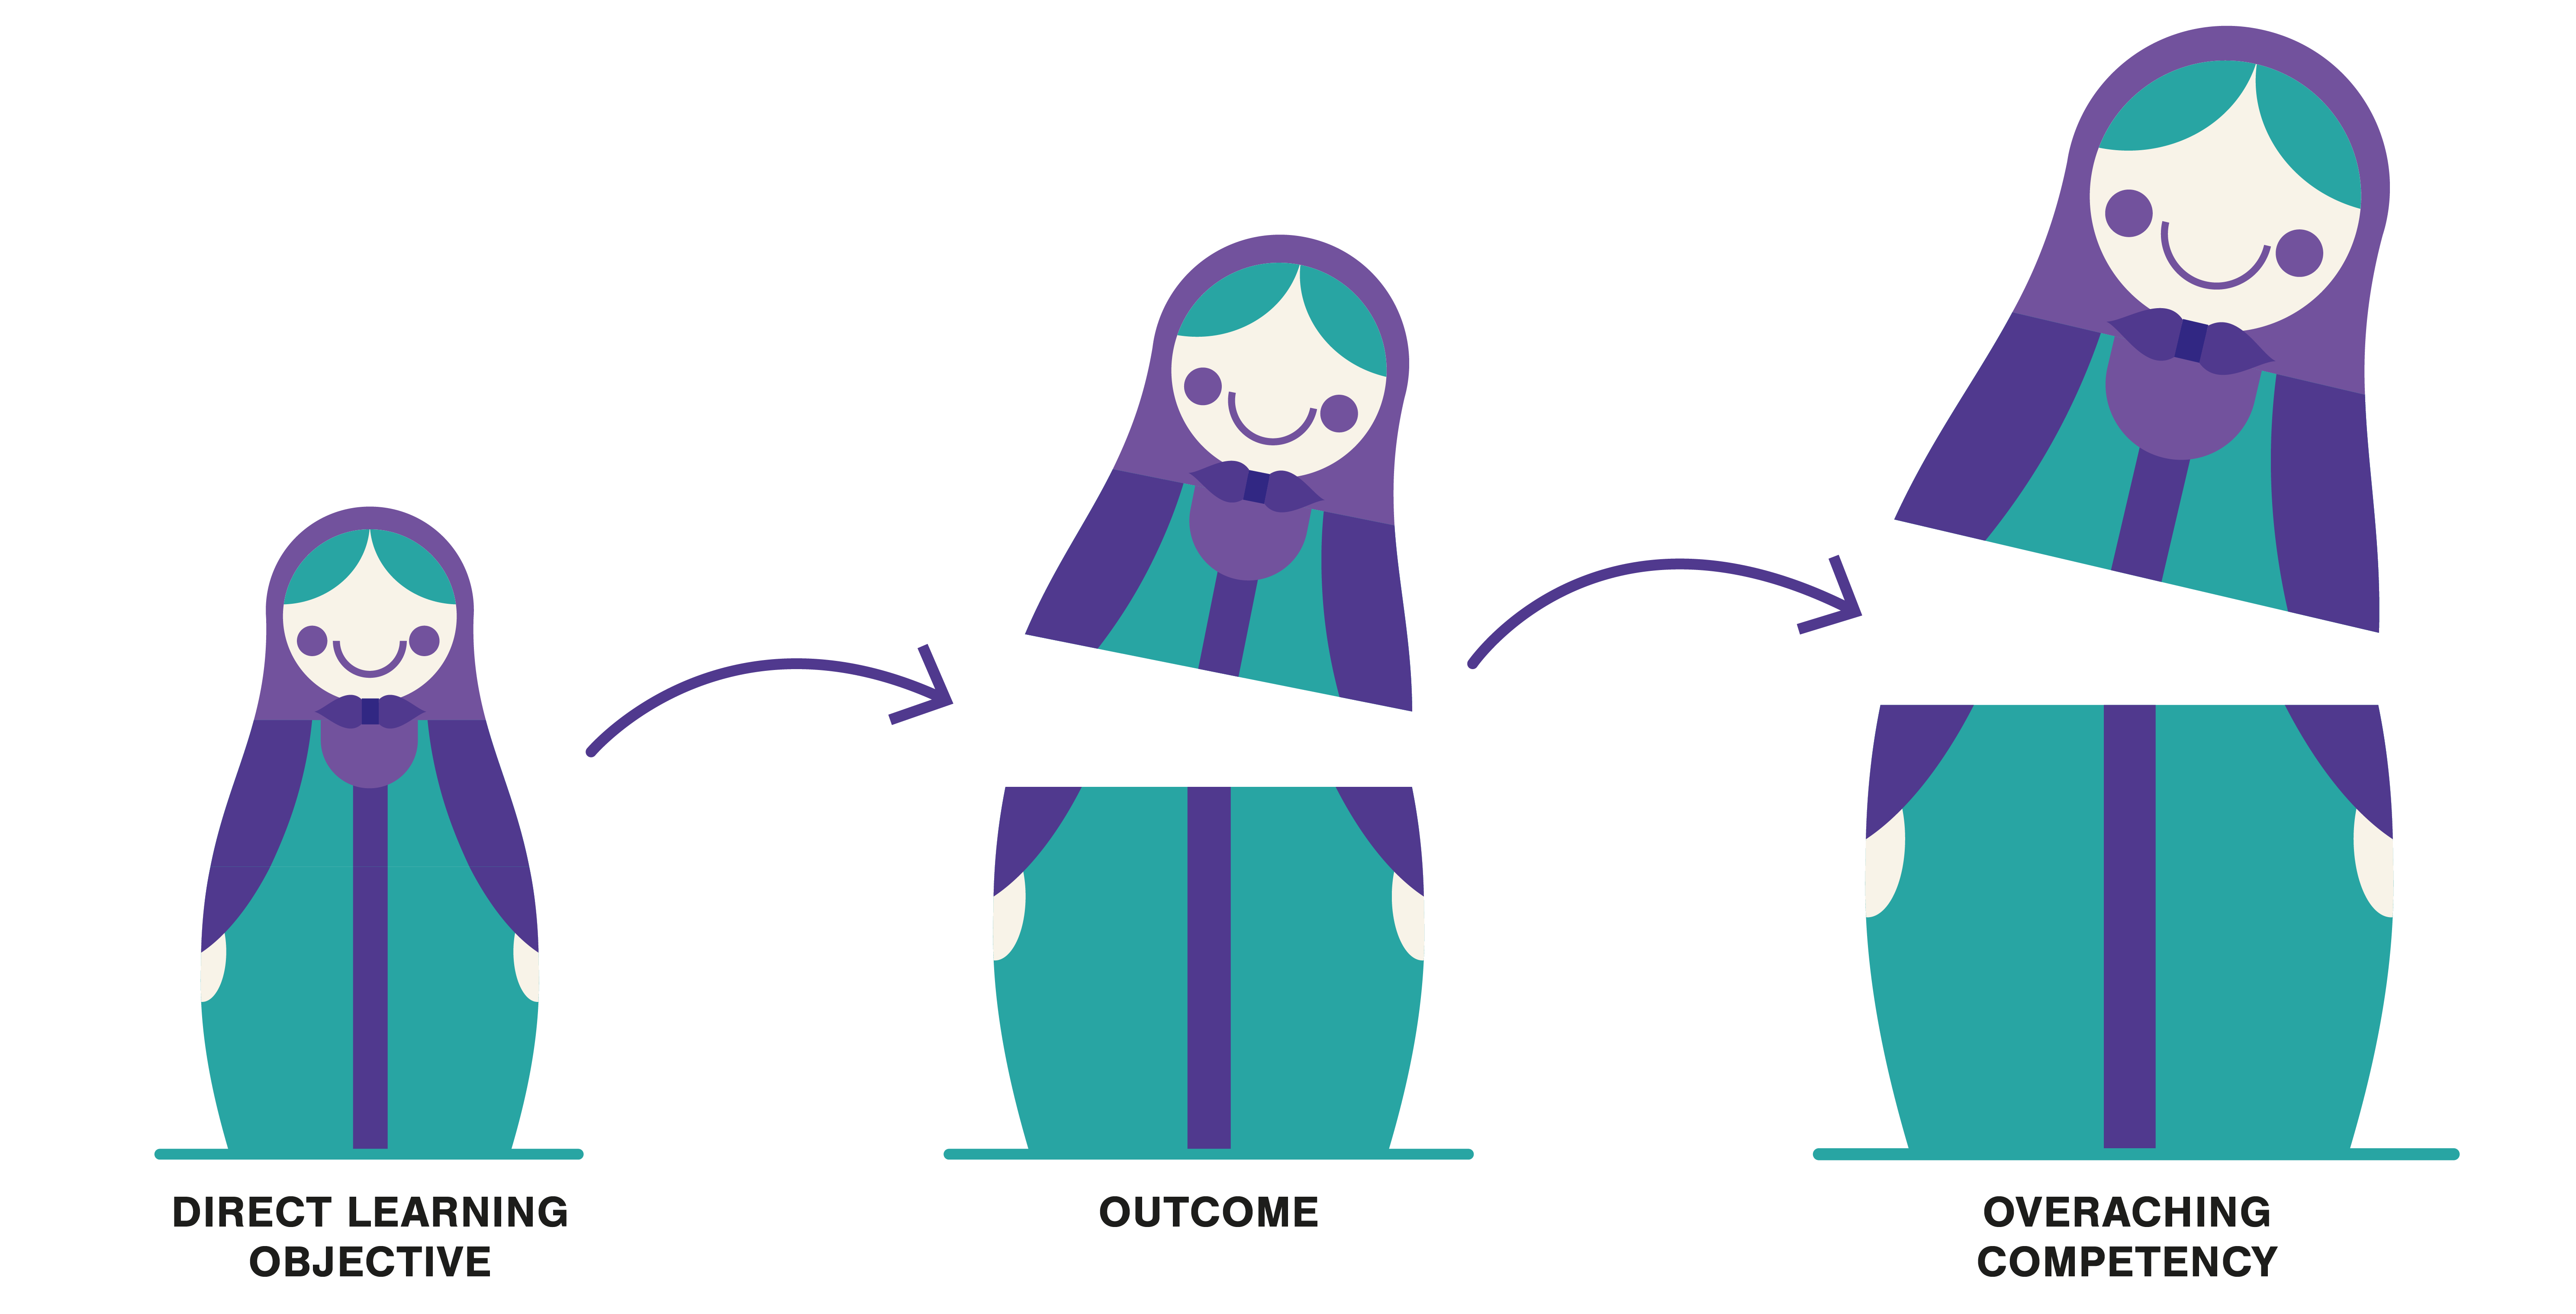 Illustration. Matryoshka from smaller to bigger showing: Direct learning objective, outcome and overaching competency.